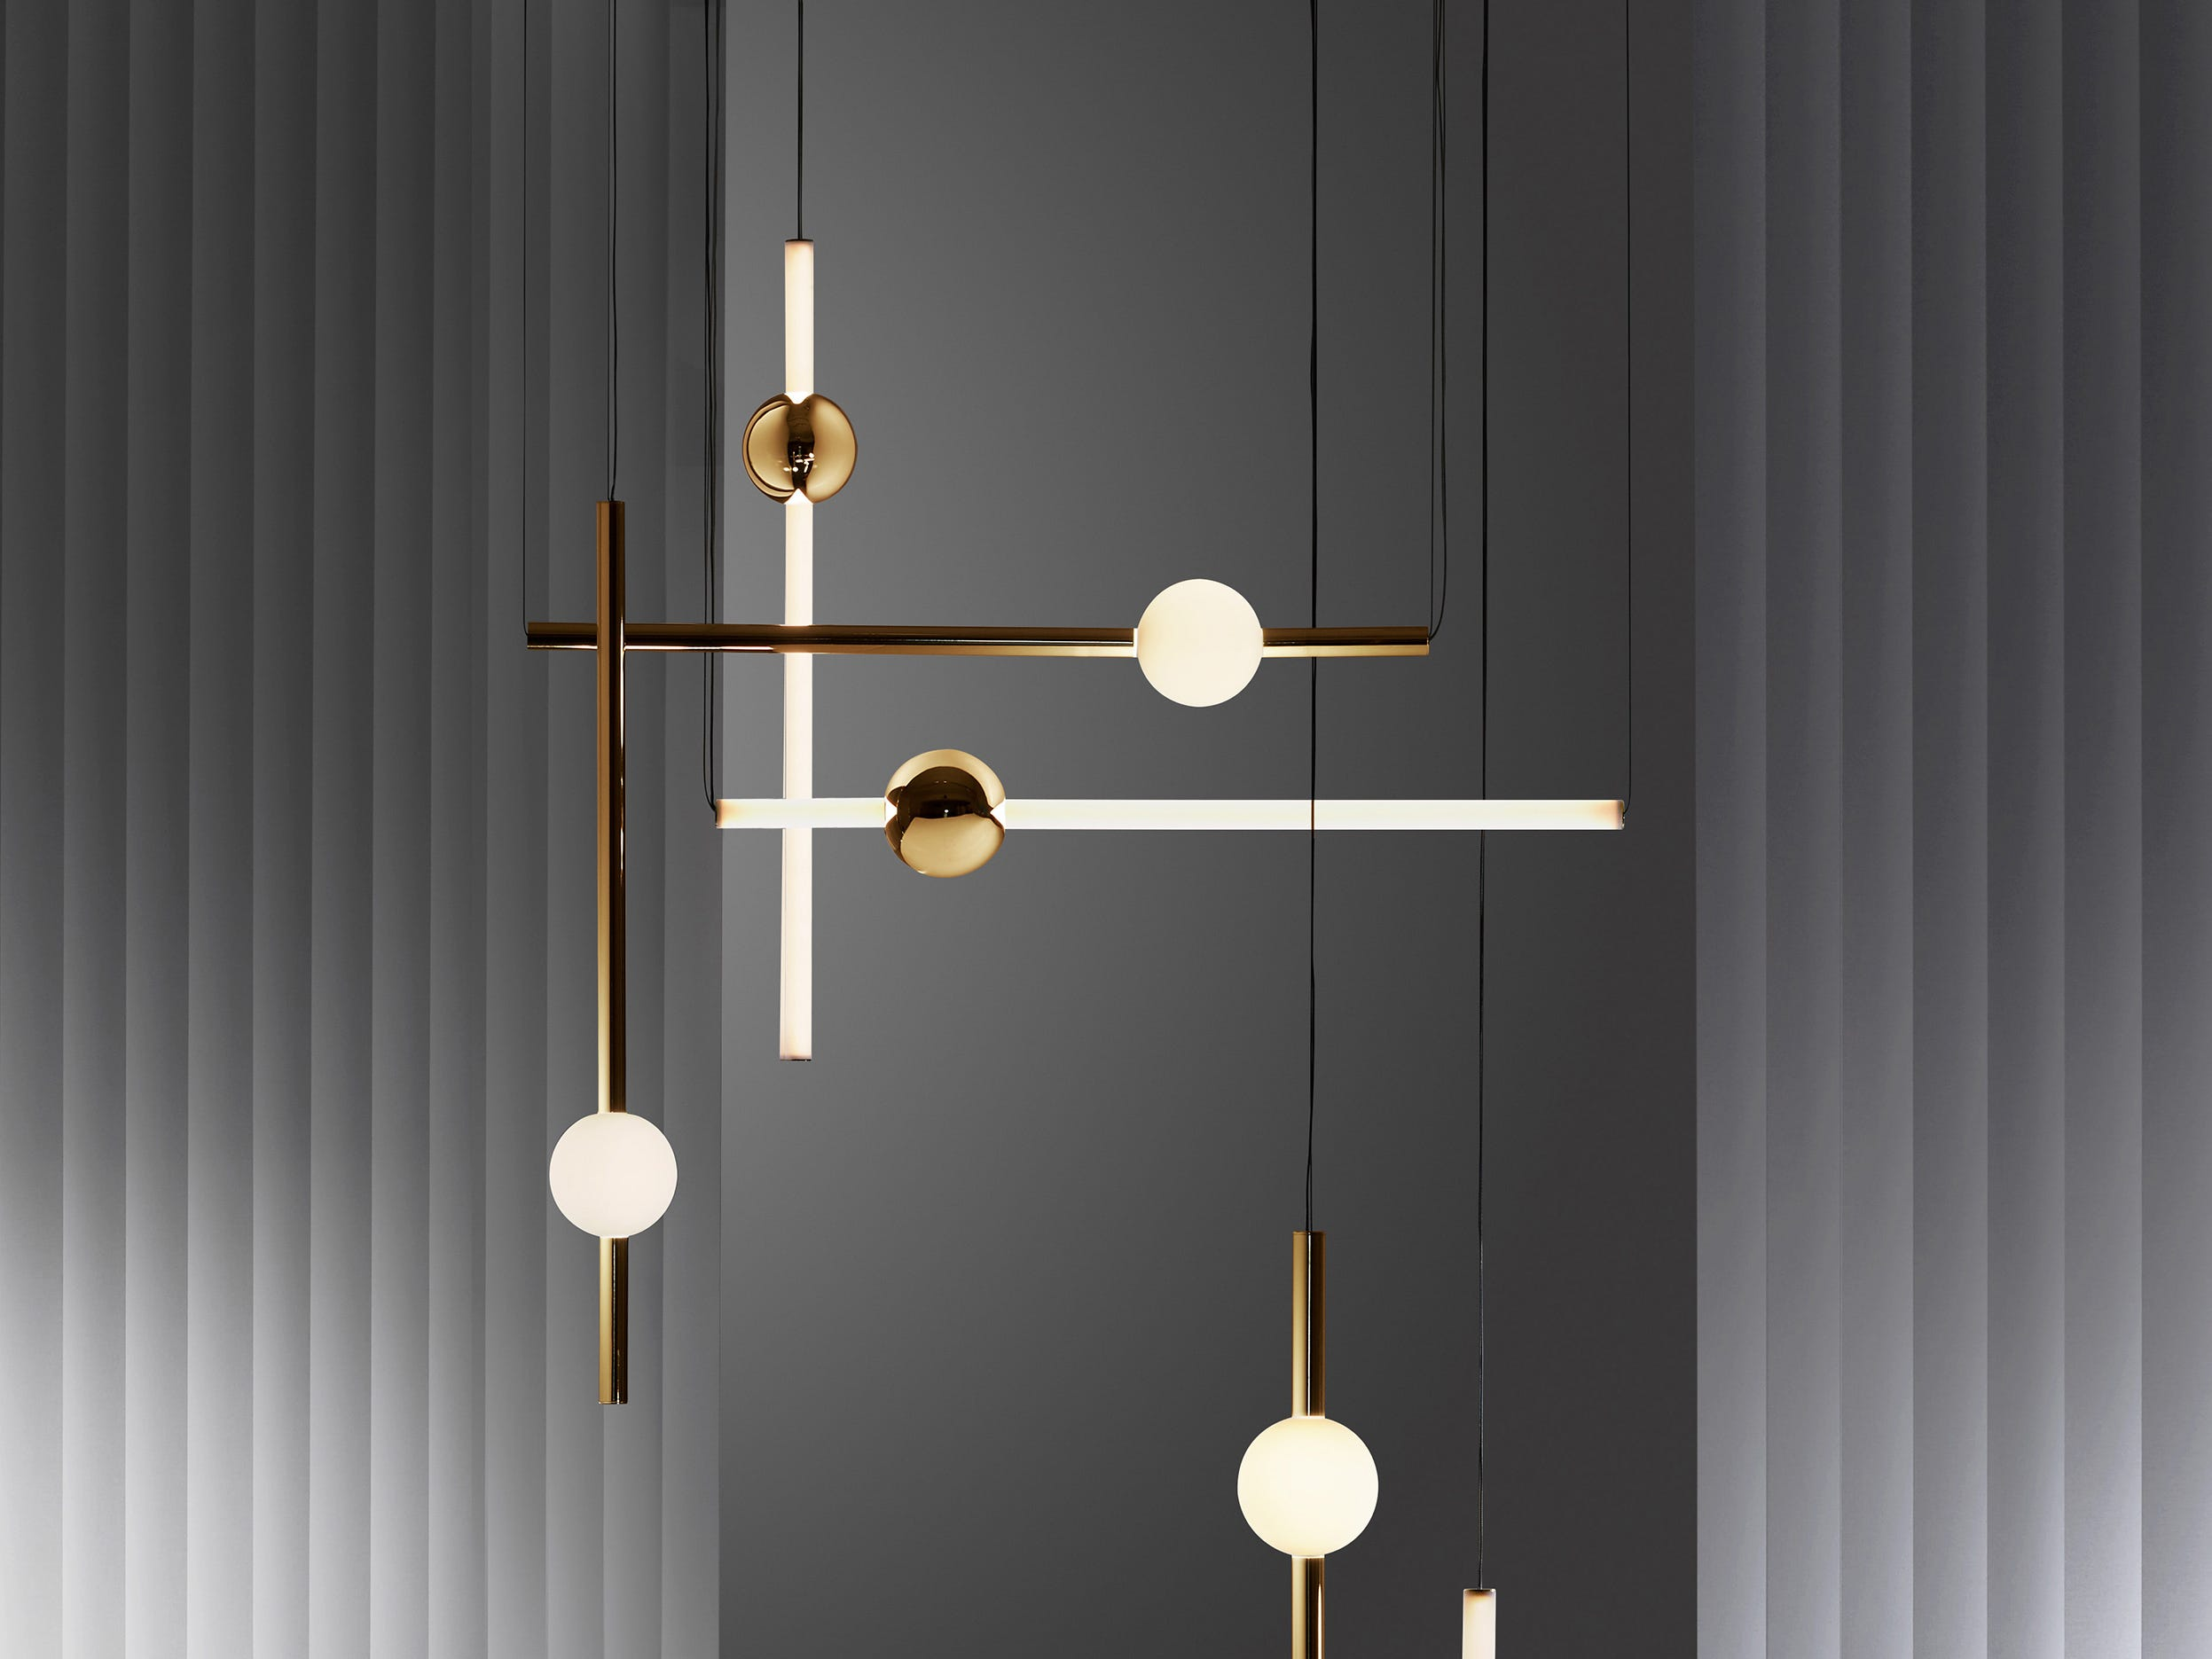 One of the U.K.'s leading product designers, Lee Broom, created a simple visual backdrop for his Observatory lighting installation. The Orion pendant set comprises simple modular tube lights with opposing opaque and solid polished gold spheres that connect and expand horizontally and vertically to create bespoke constellations of light.